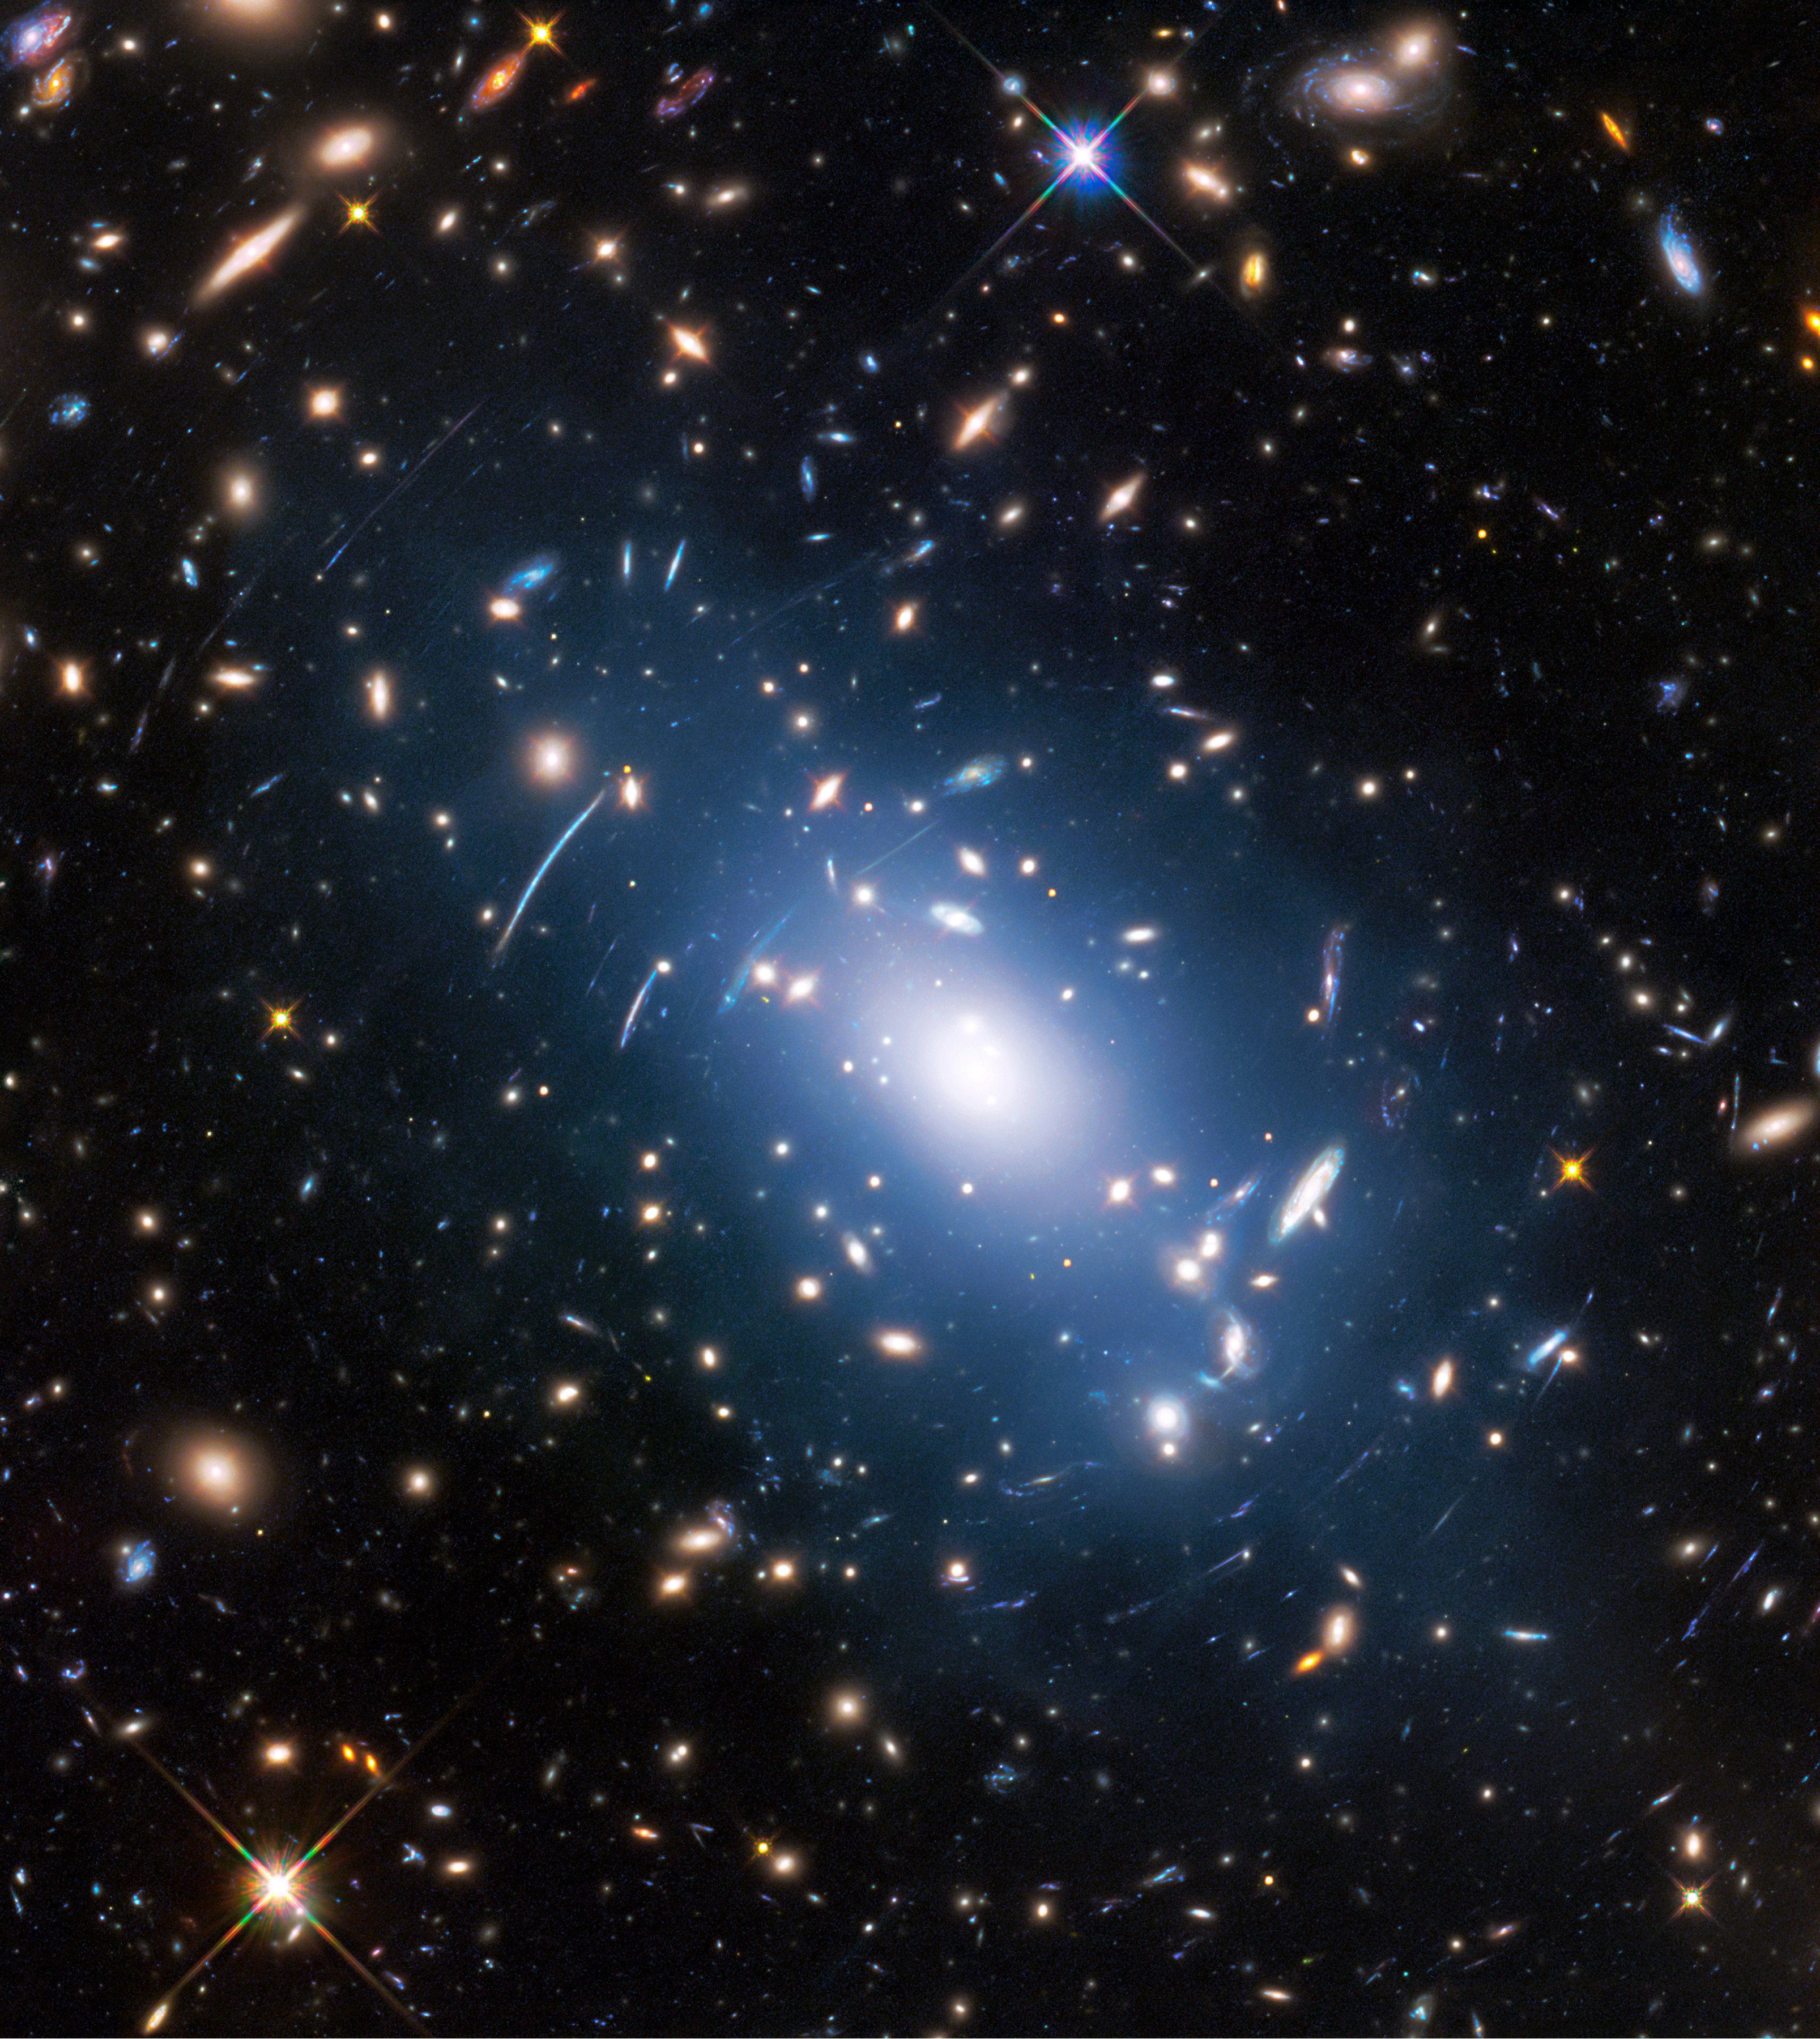 faint glow generated by galaxy clusters helps map dark matter